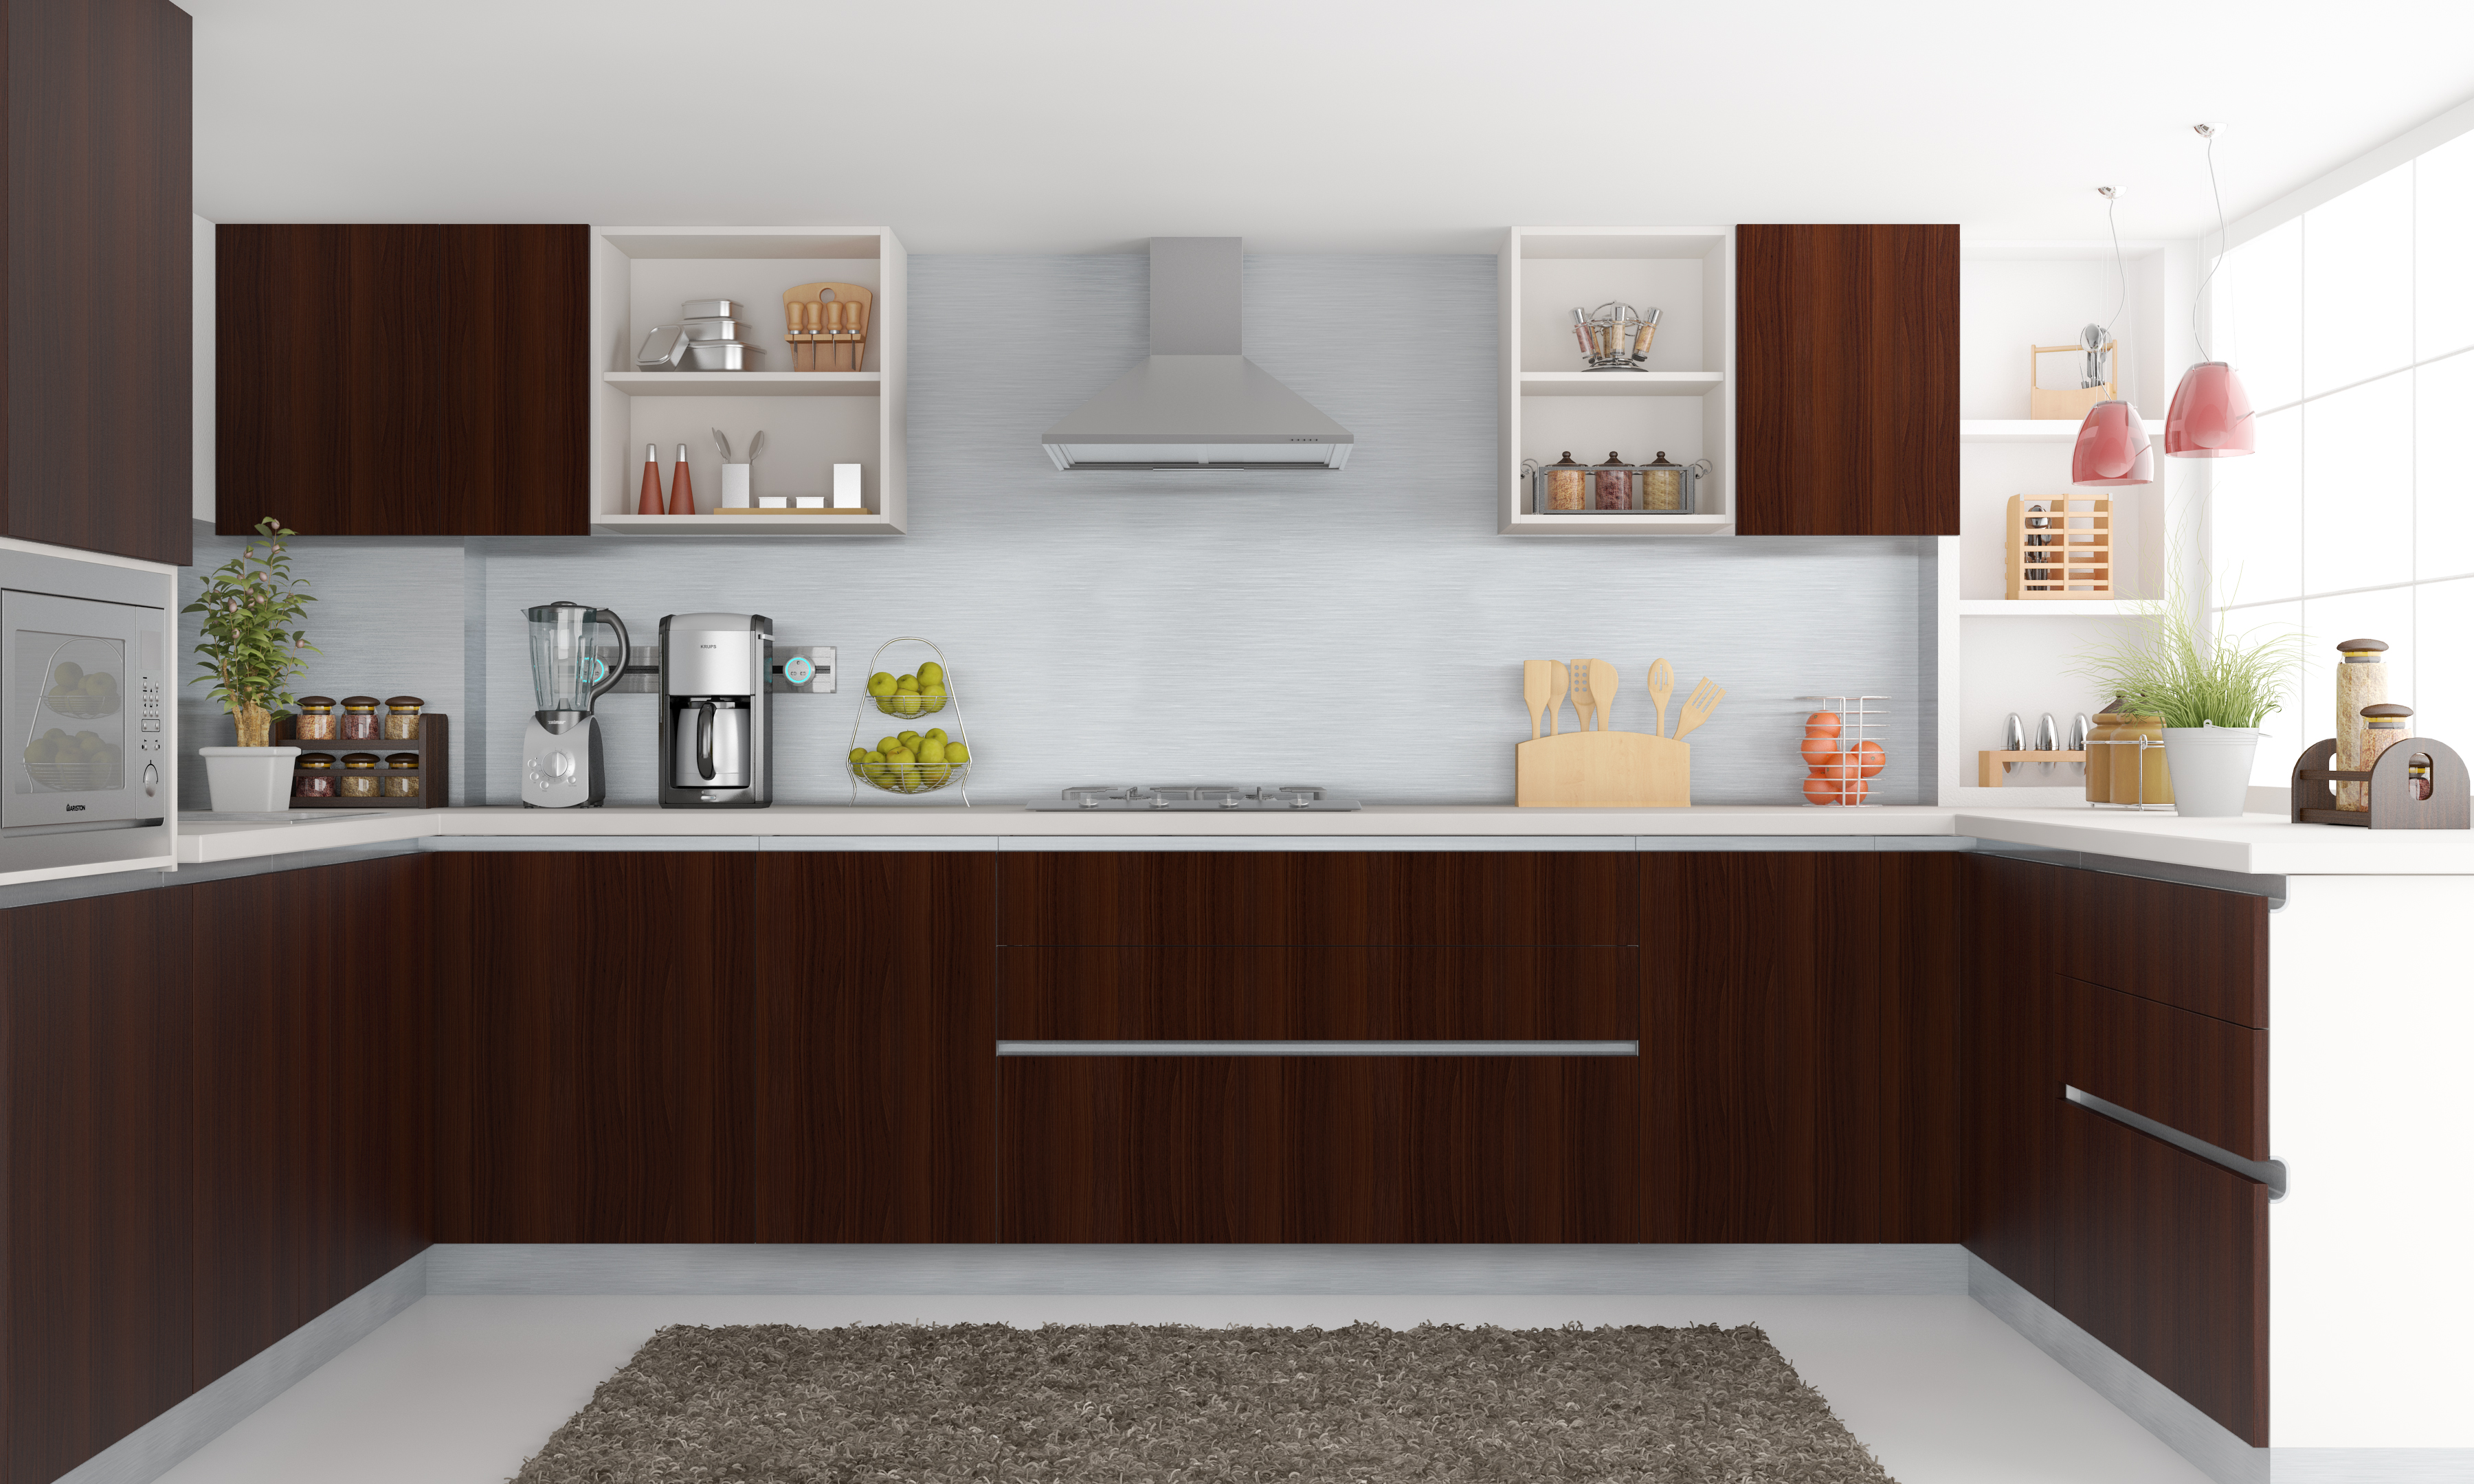 Kitchen Sink Cost In Chennai